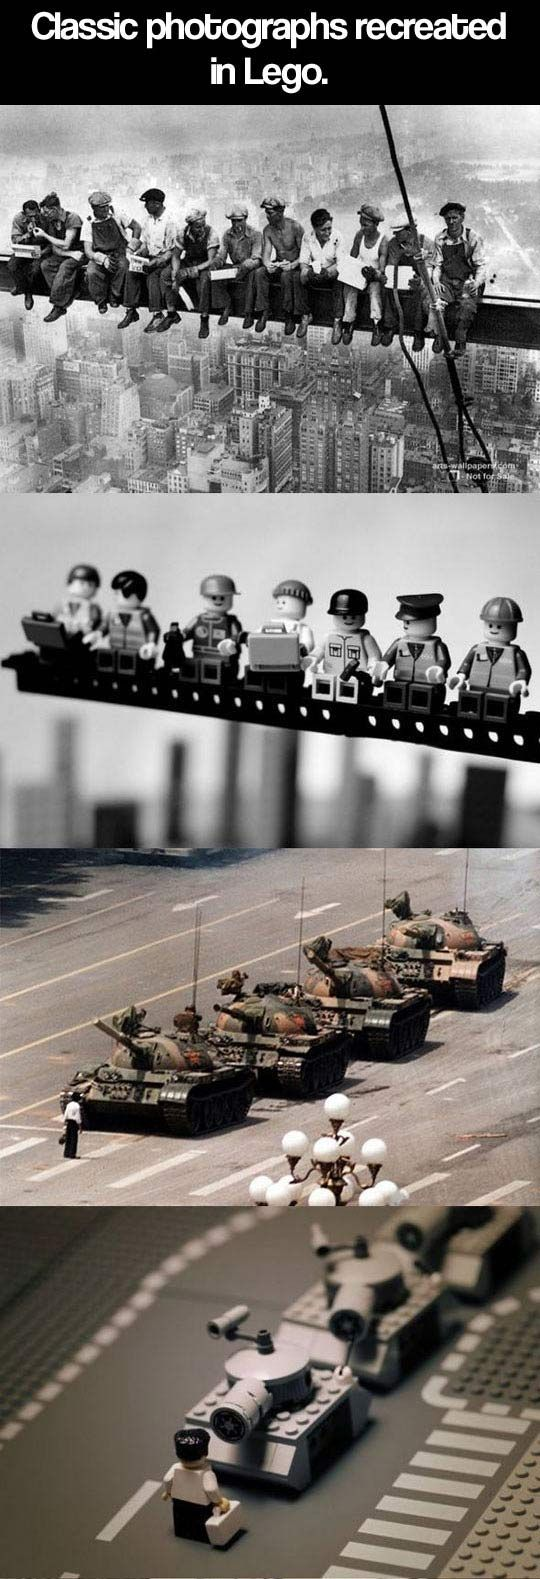 For the parents getting ready for LEGO KidsFest in a few weeks! Historical photographs recreated using LEGOs.